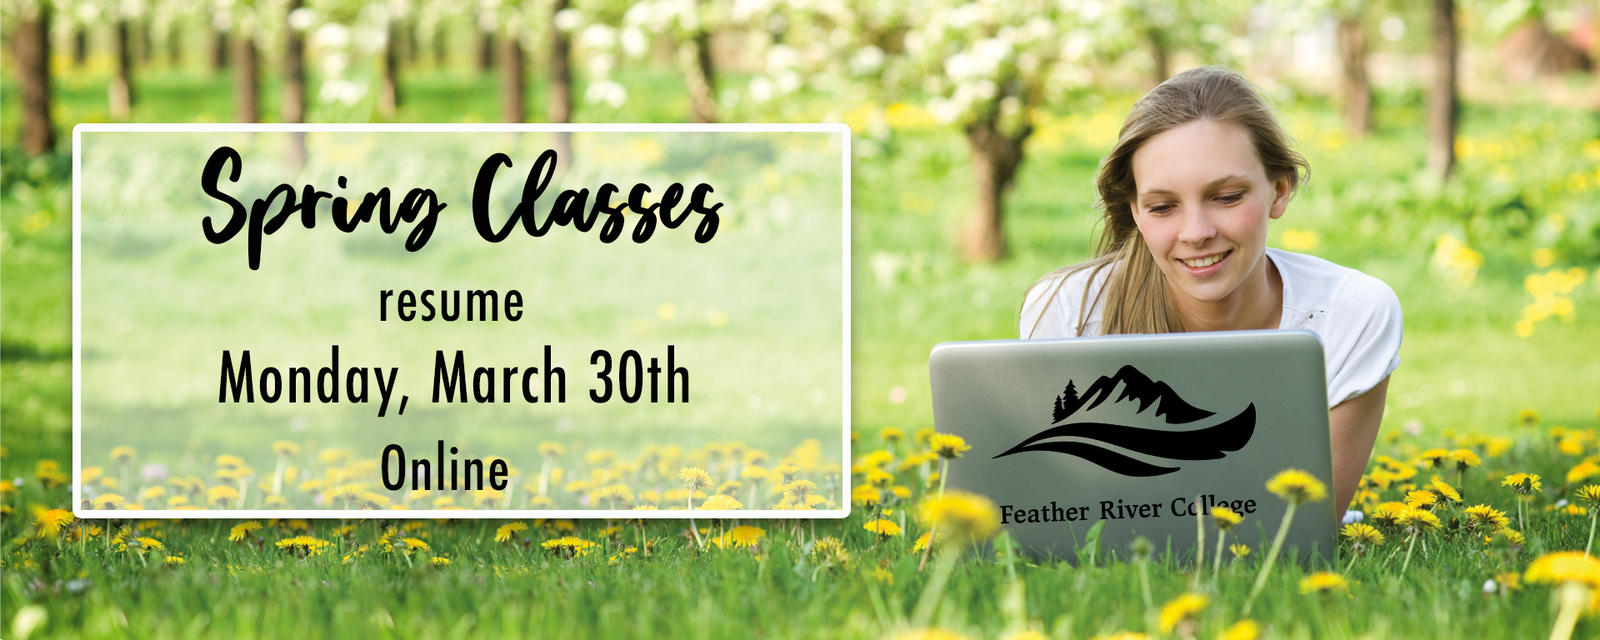 spring classes resume online Monday March 30th.